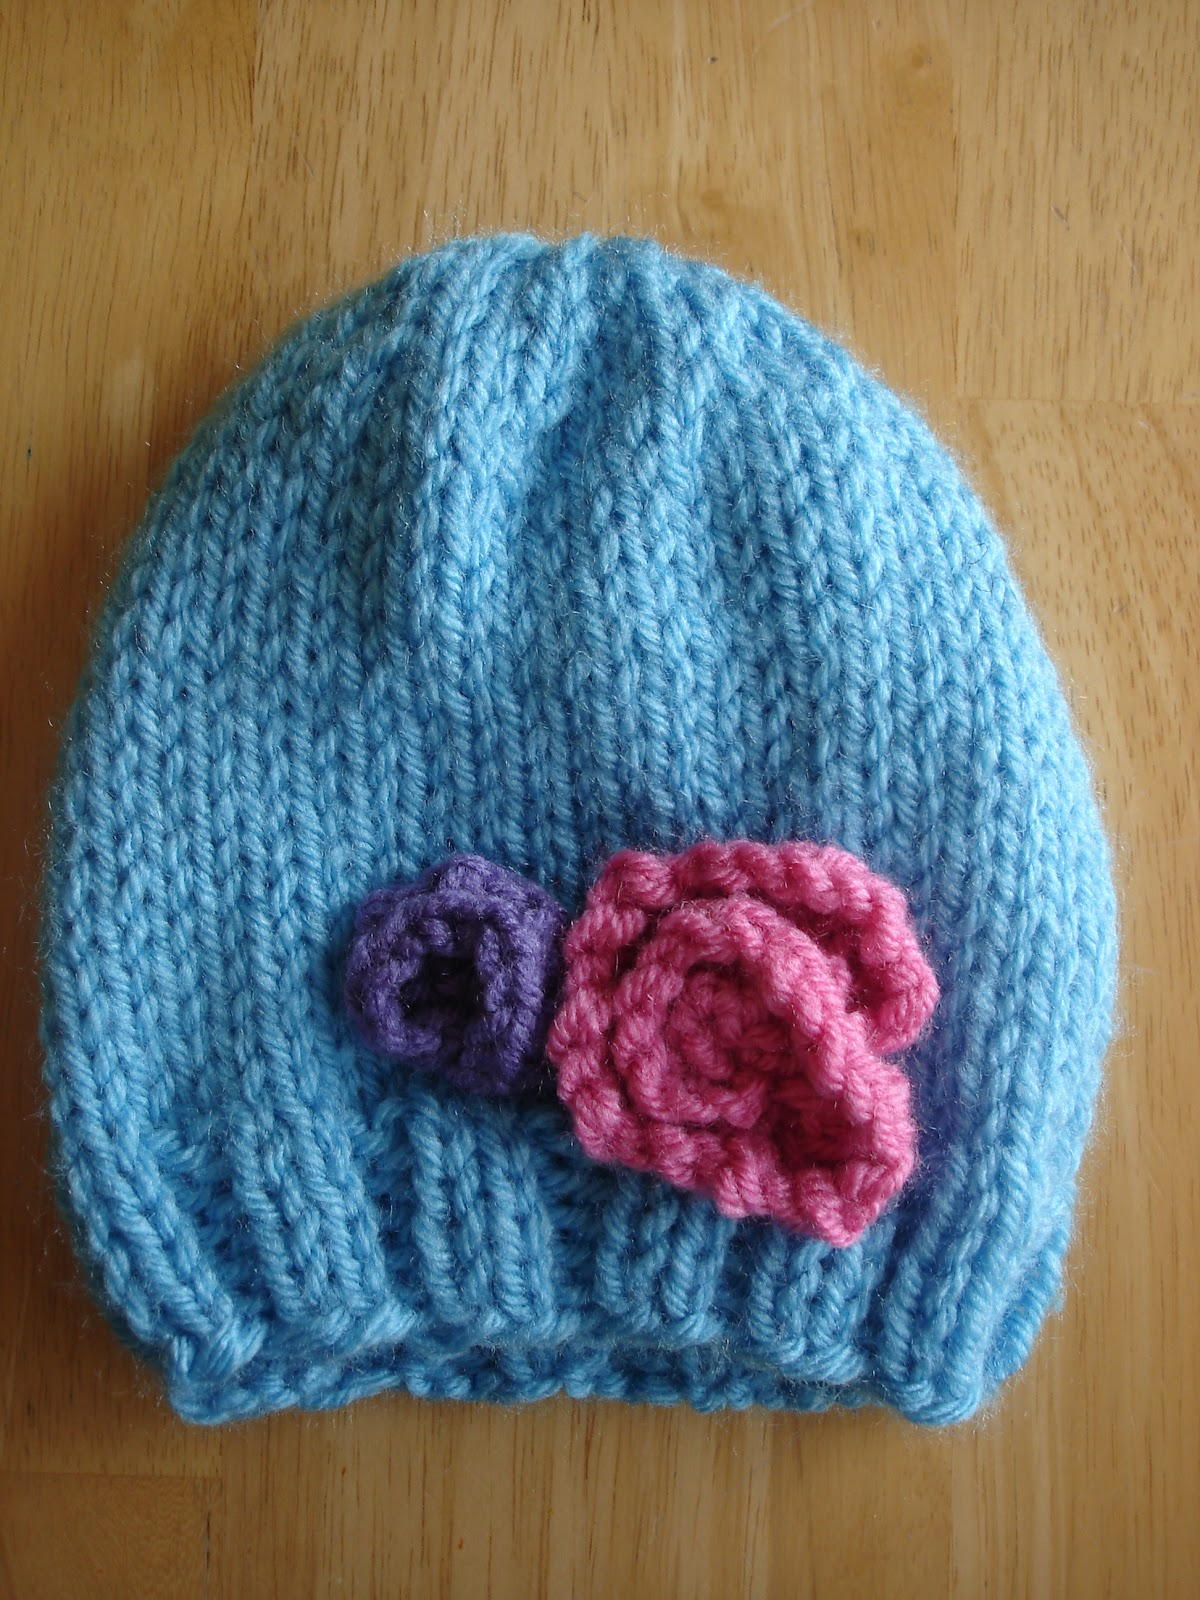 Fiber flux free knitting pattern baby in bloom hats free knitting pattern baby in bloom hats bankloansurffo Gallery